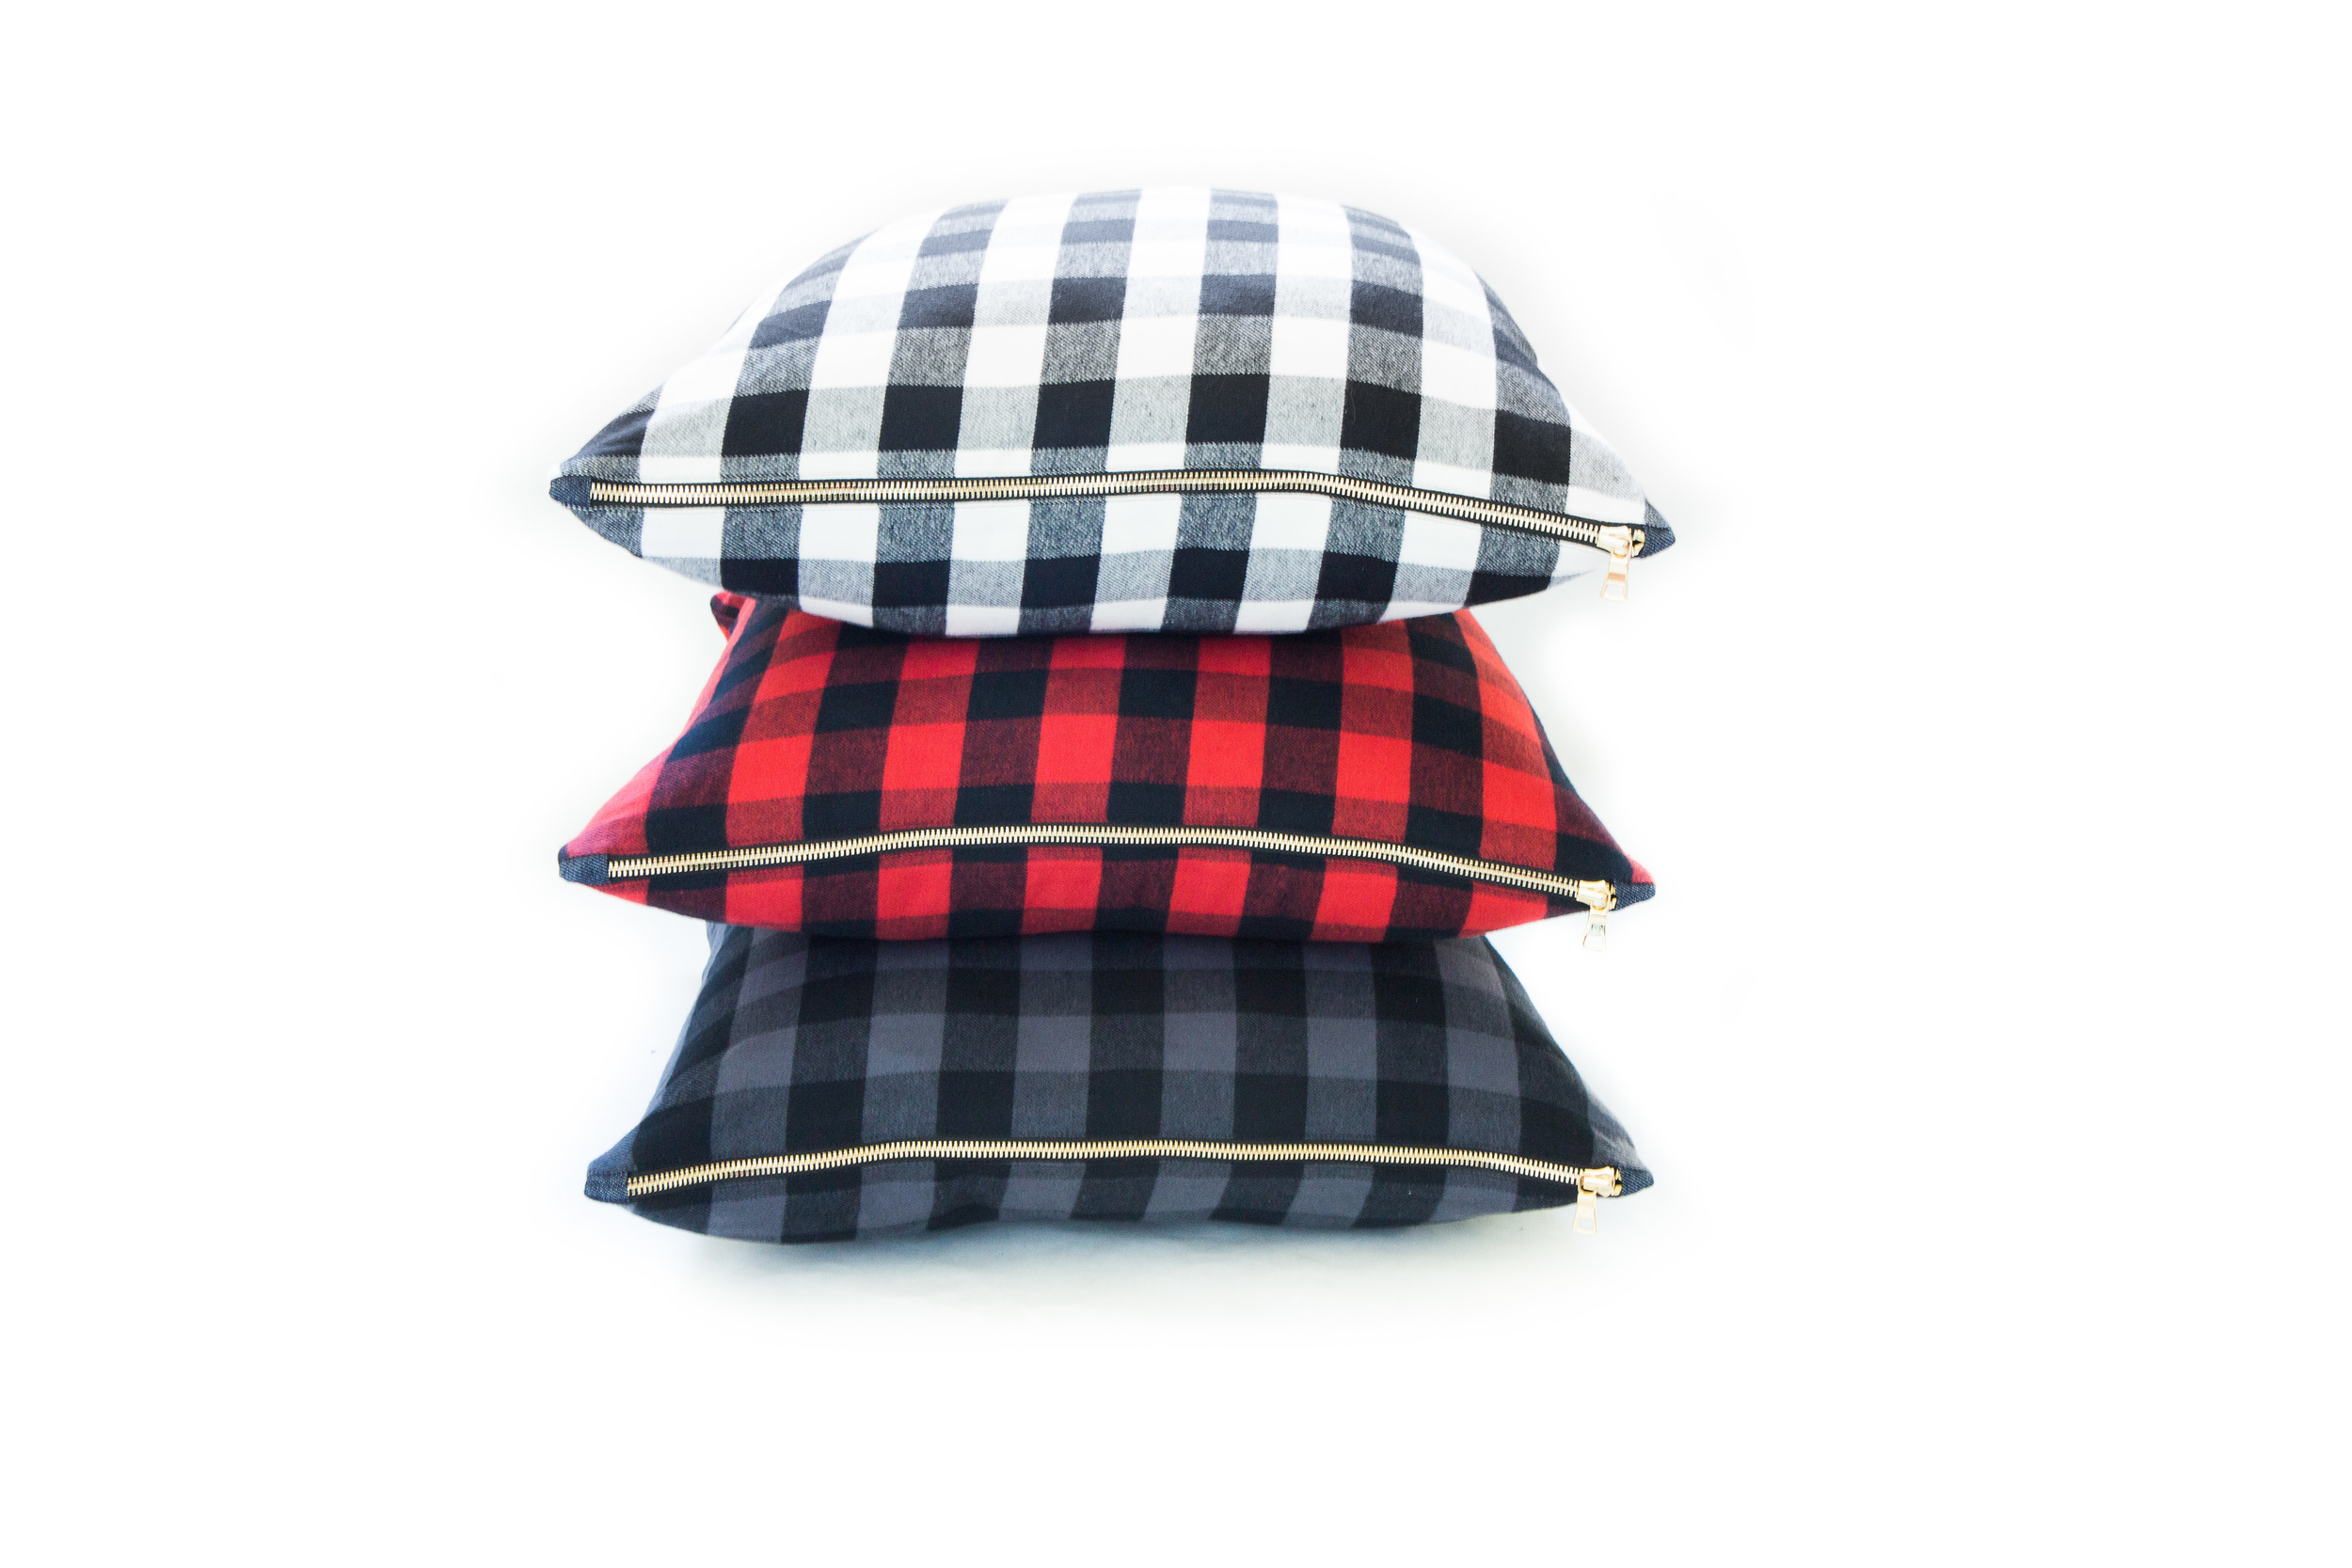 New collection of Buffalo Check Pillows with exposed gold zipper detail.